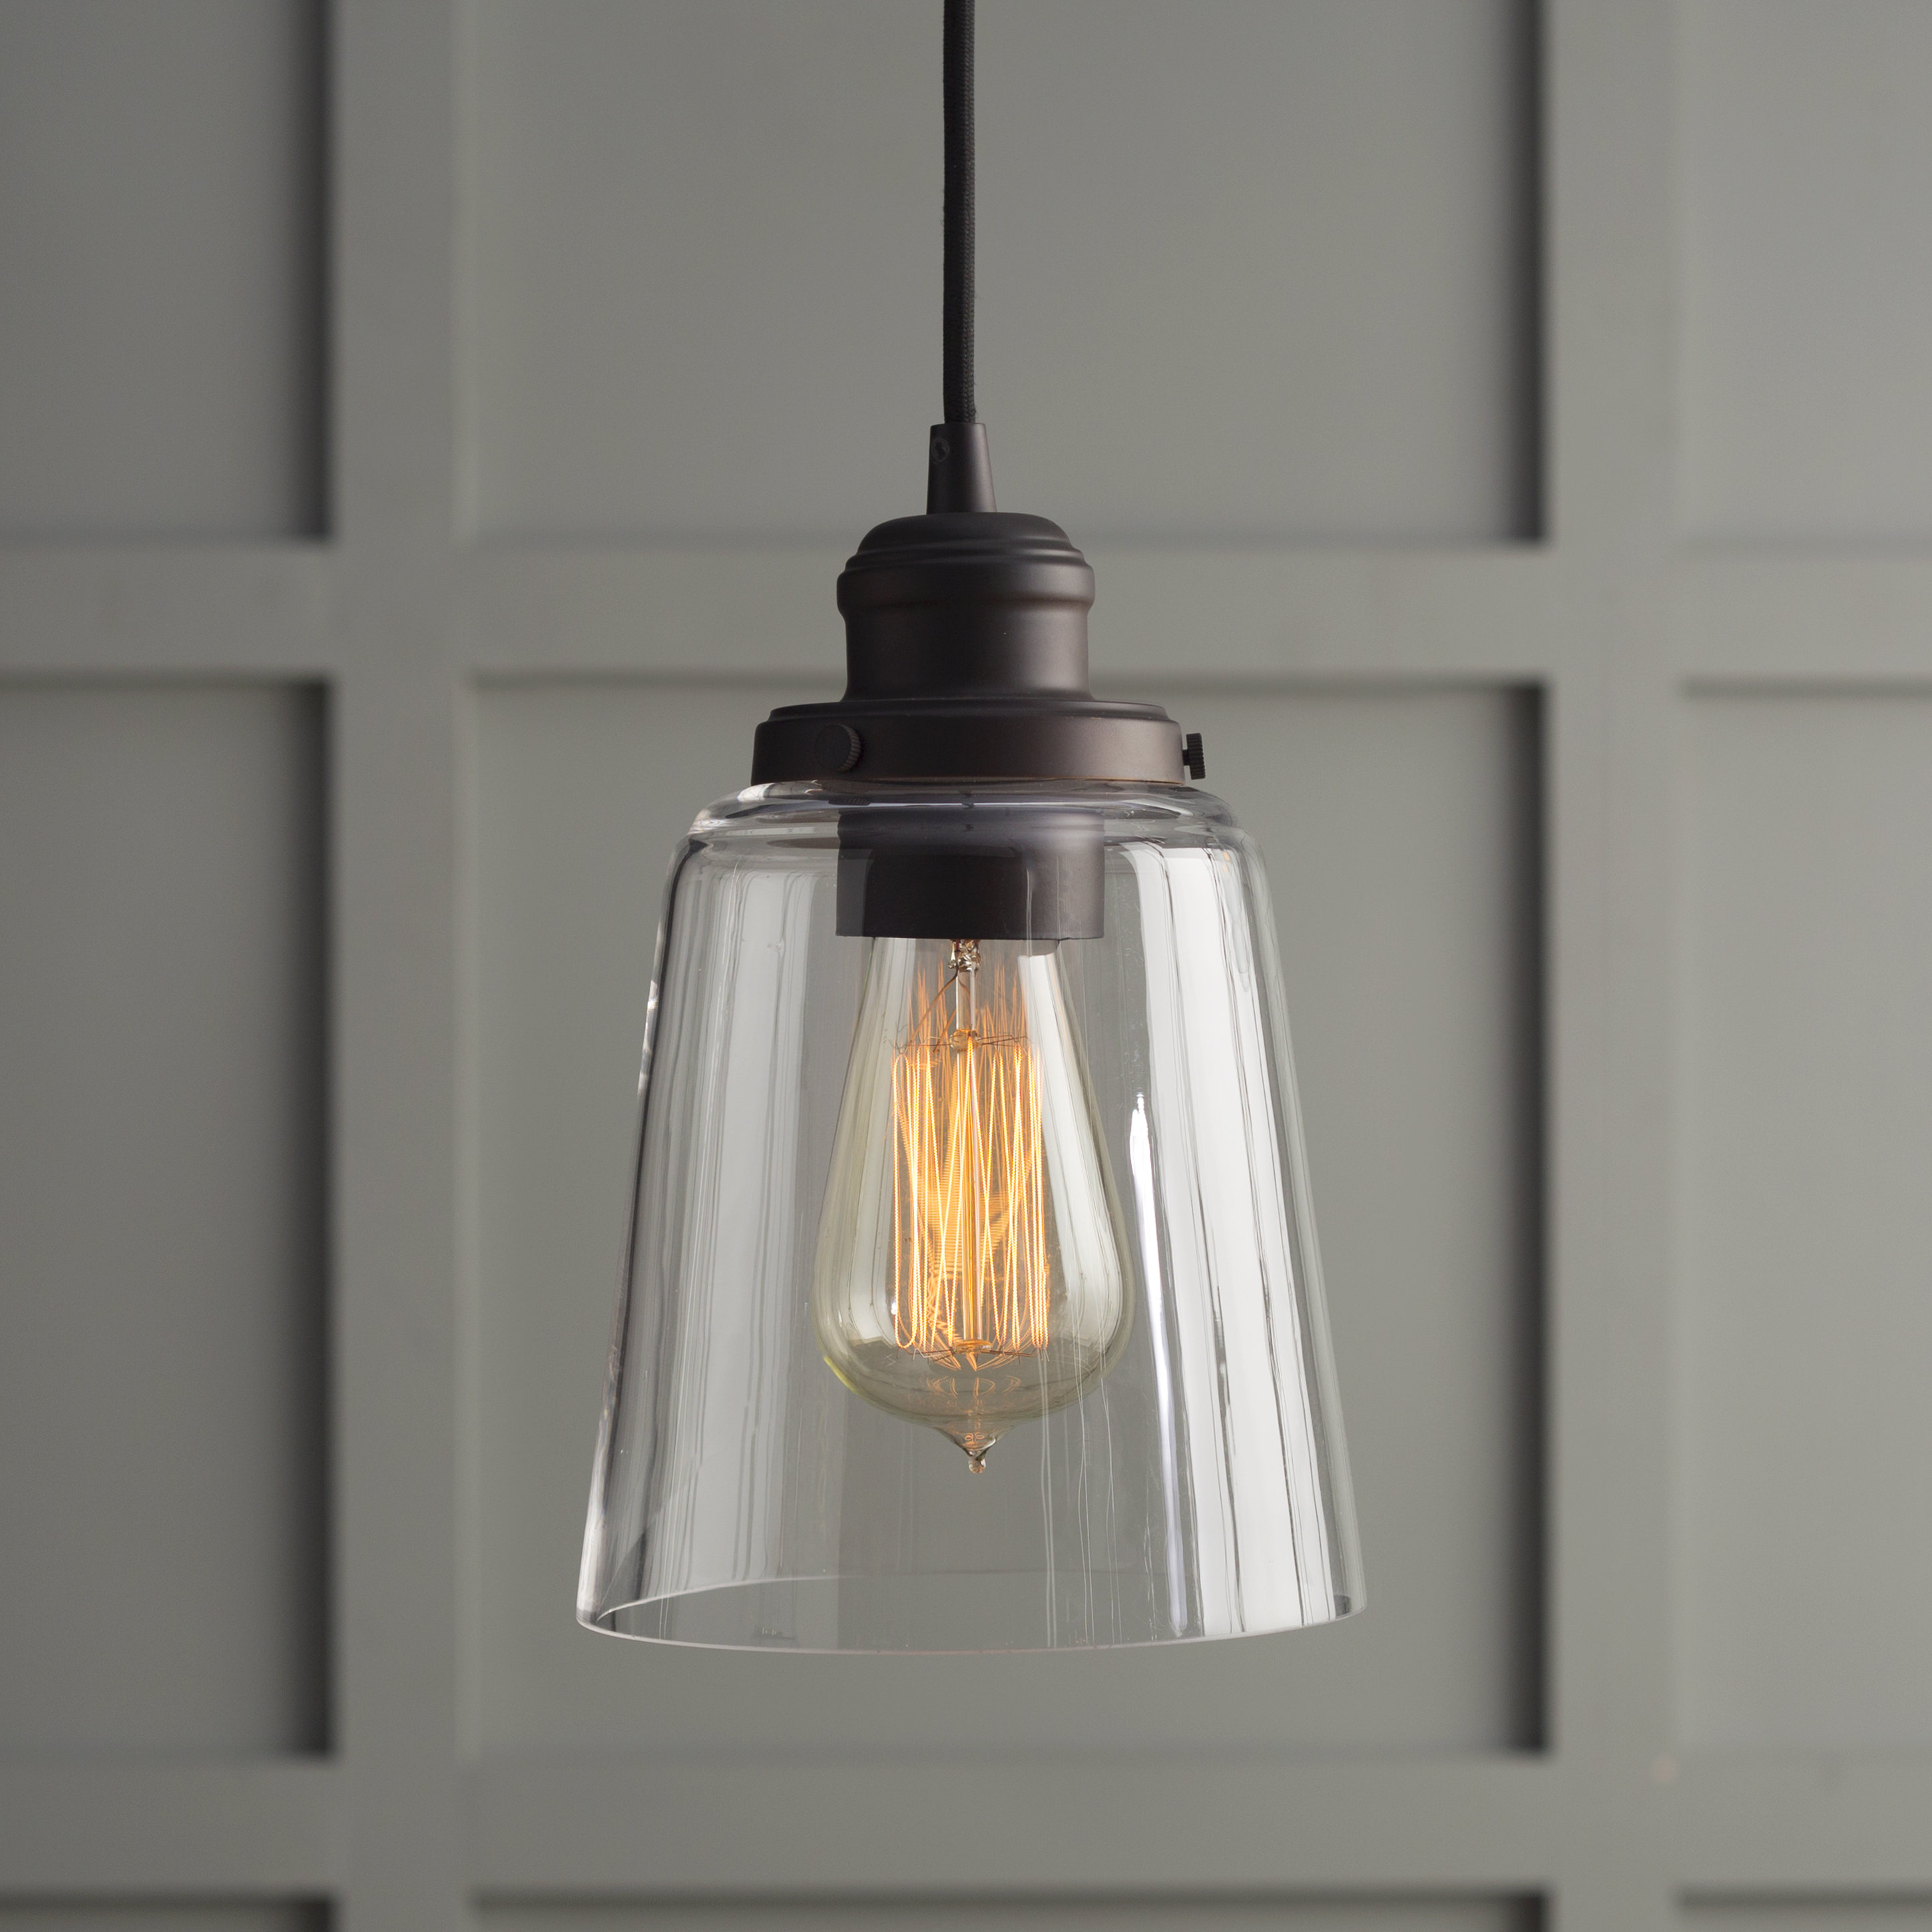 1 Light Single Bell Pendant Throughout Moyer 1 Light Single Cylinder Pendants (Photo 7 of 30)